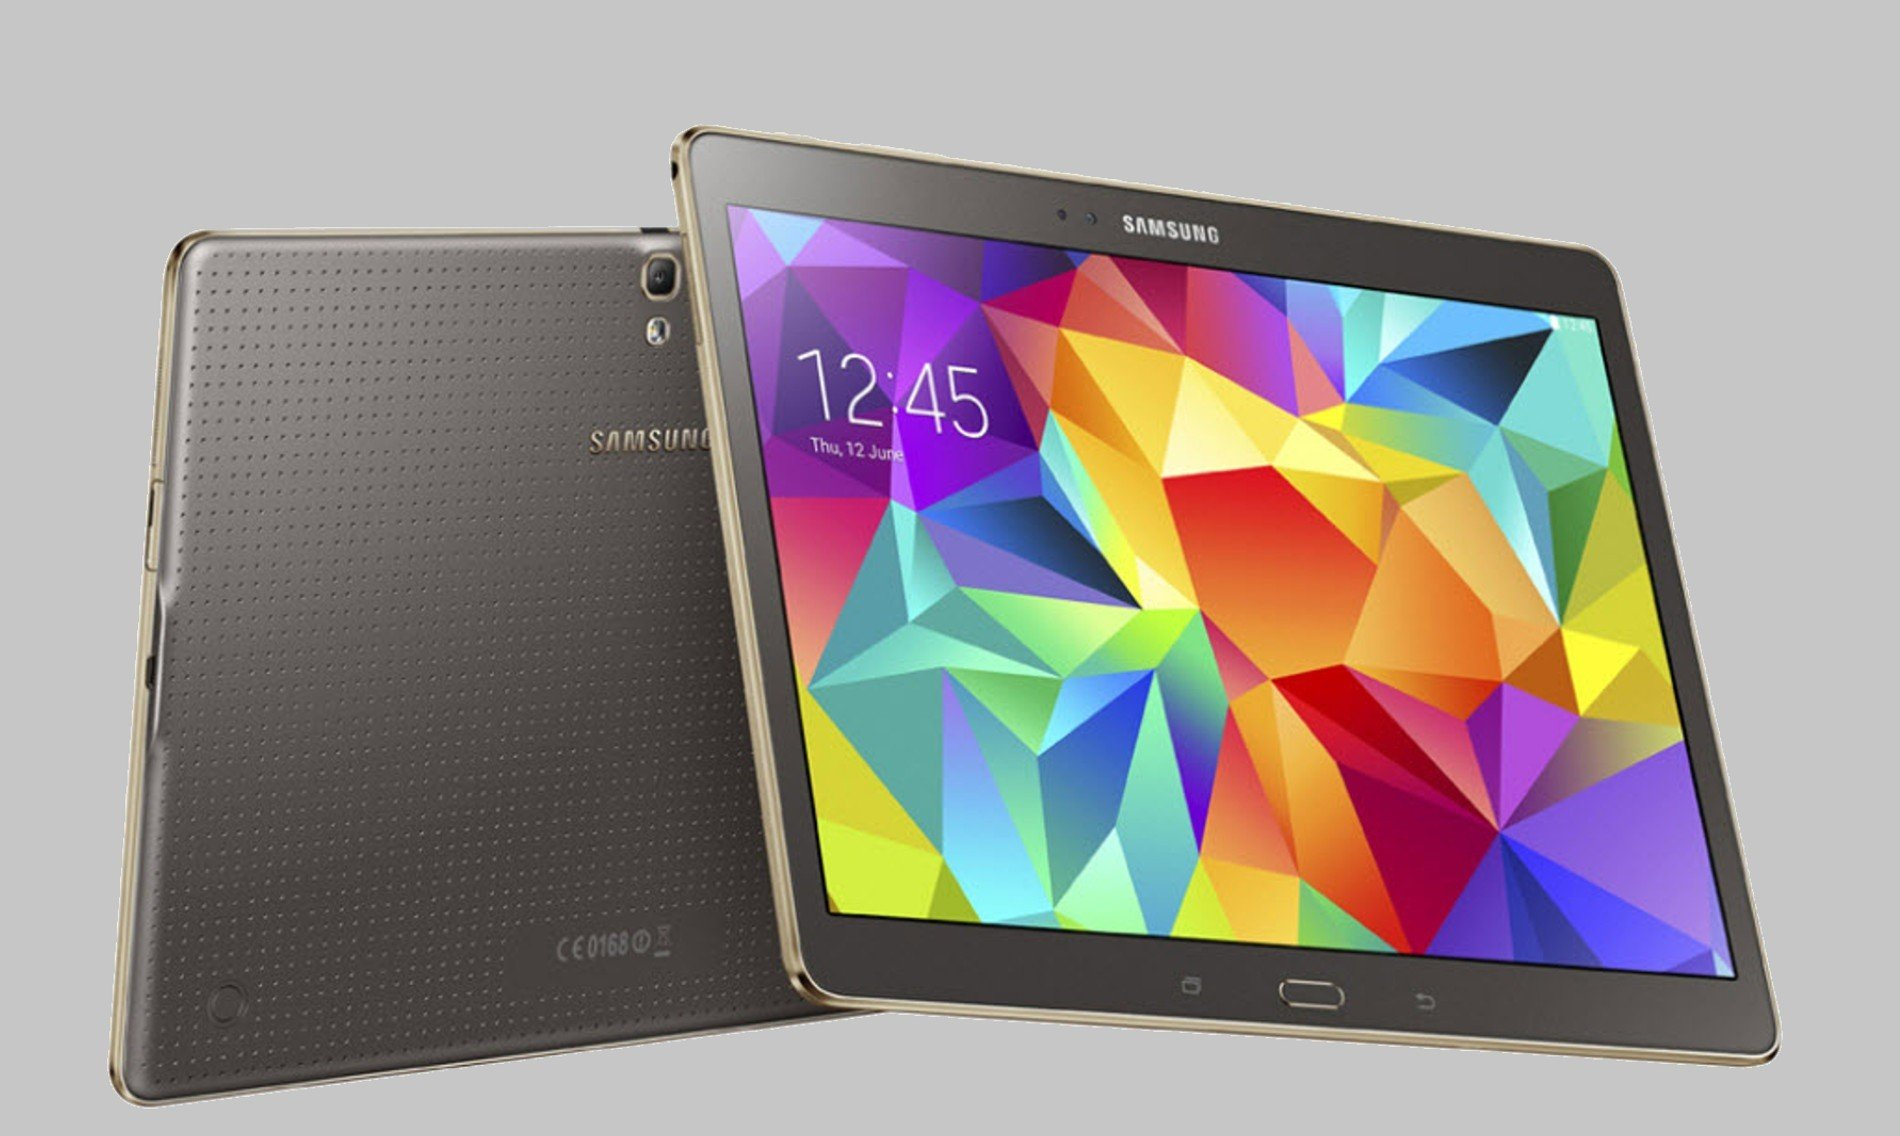 Top 5 Tablet Brands To Buy In Nigeria